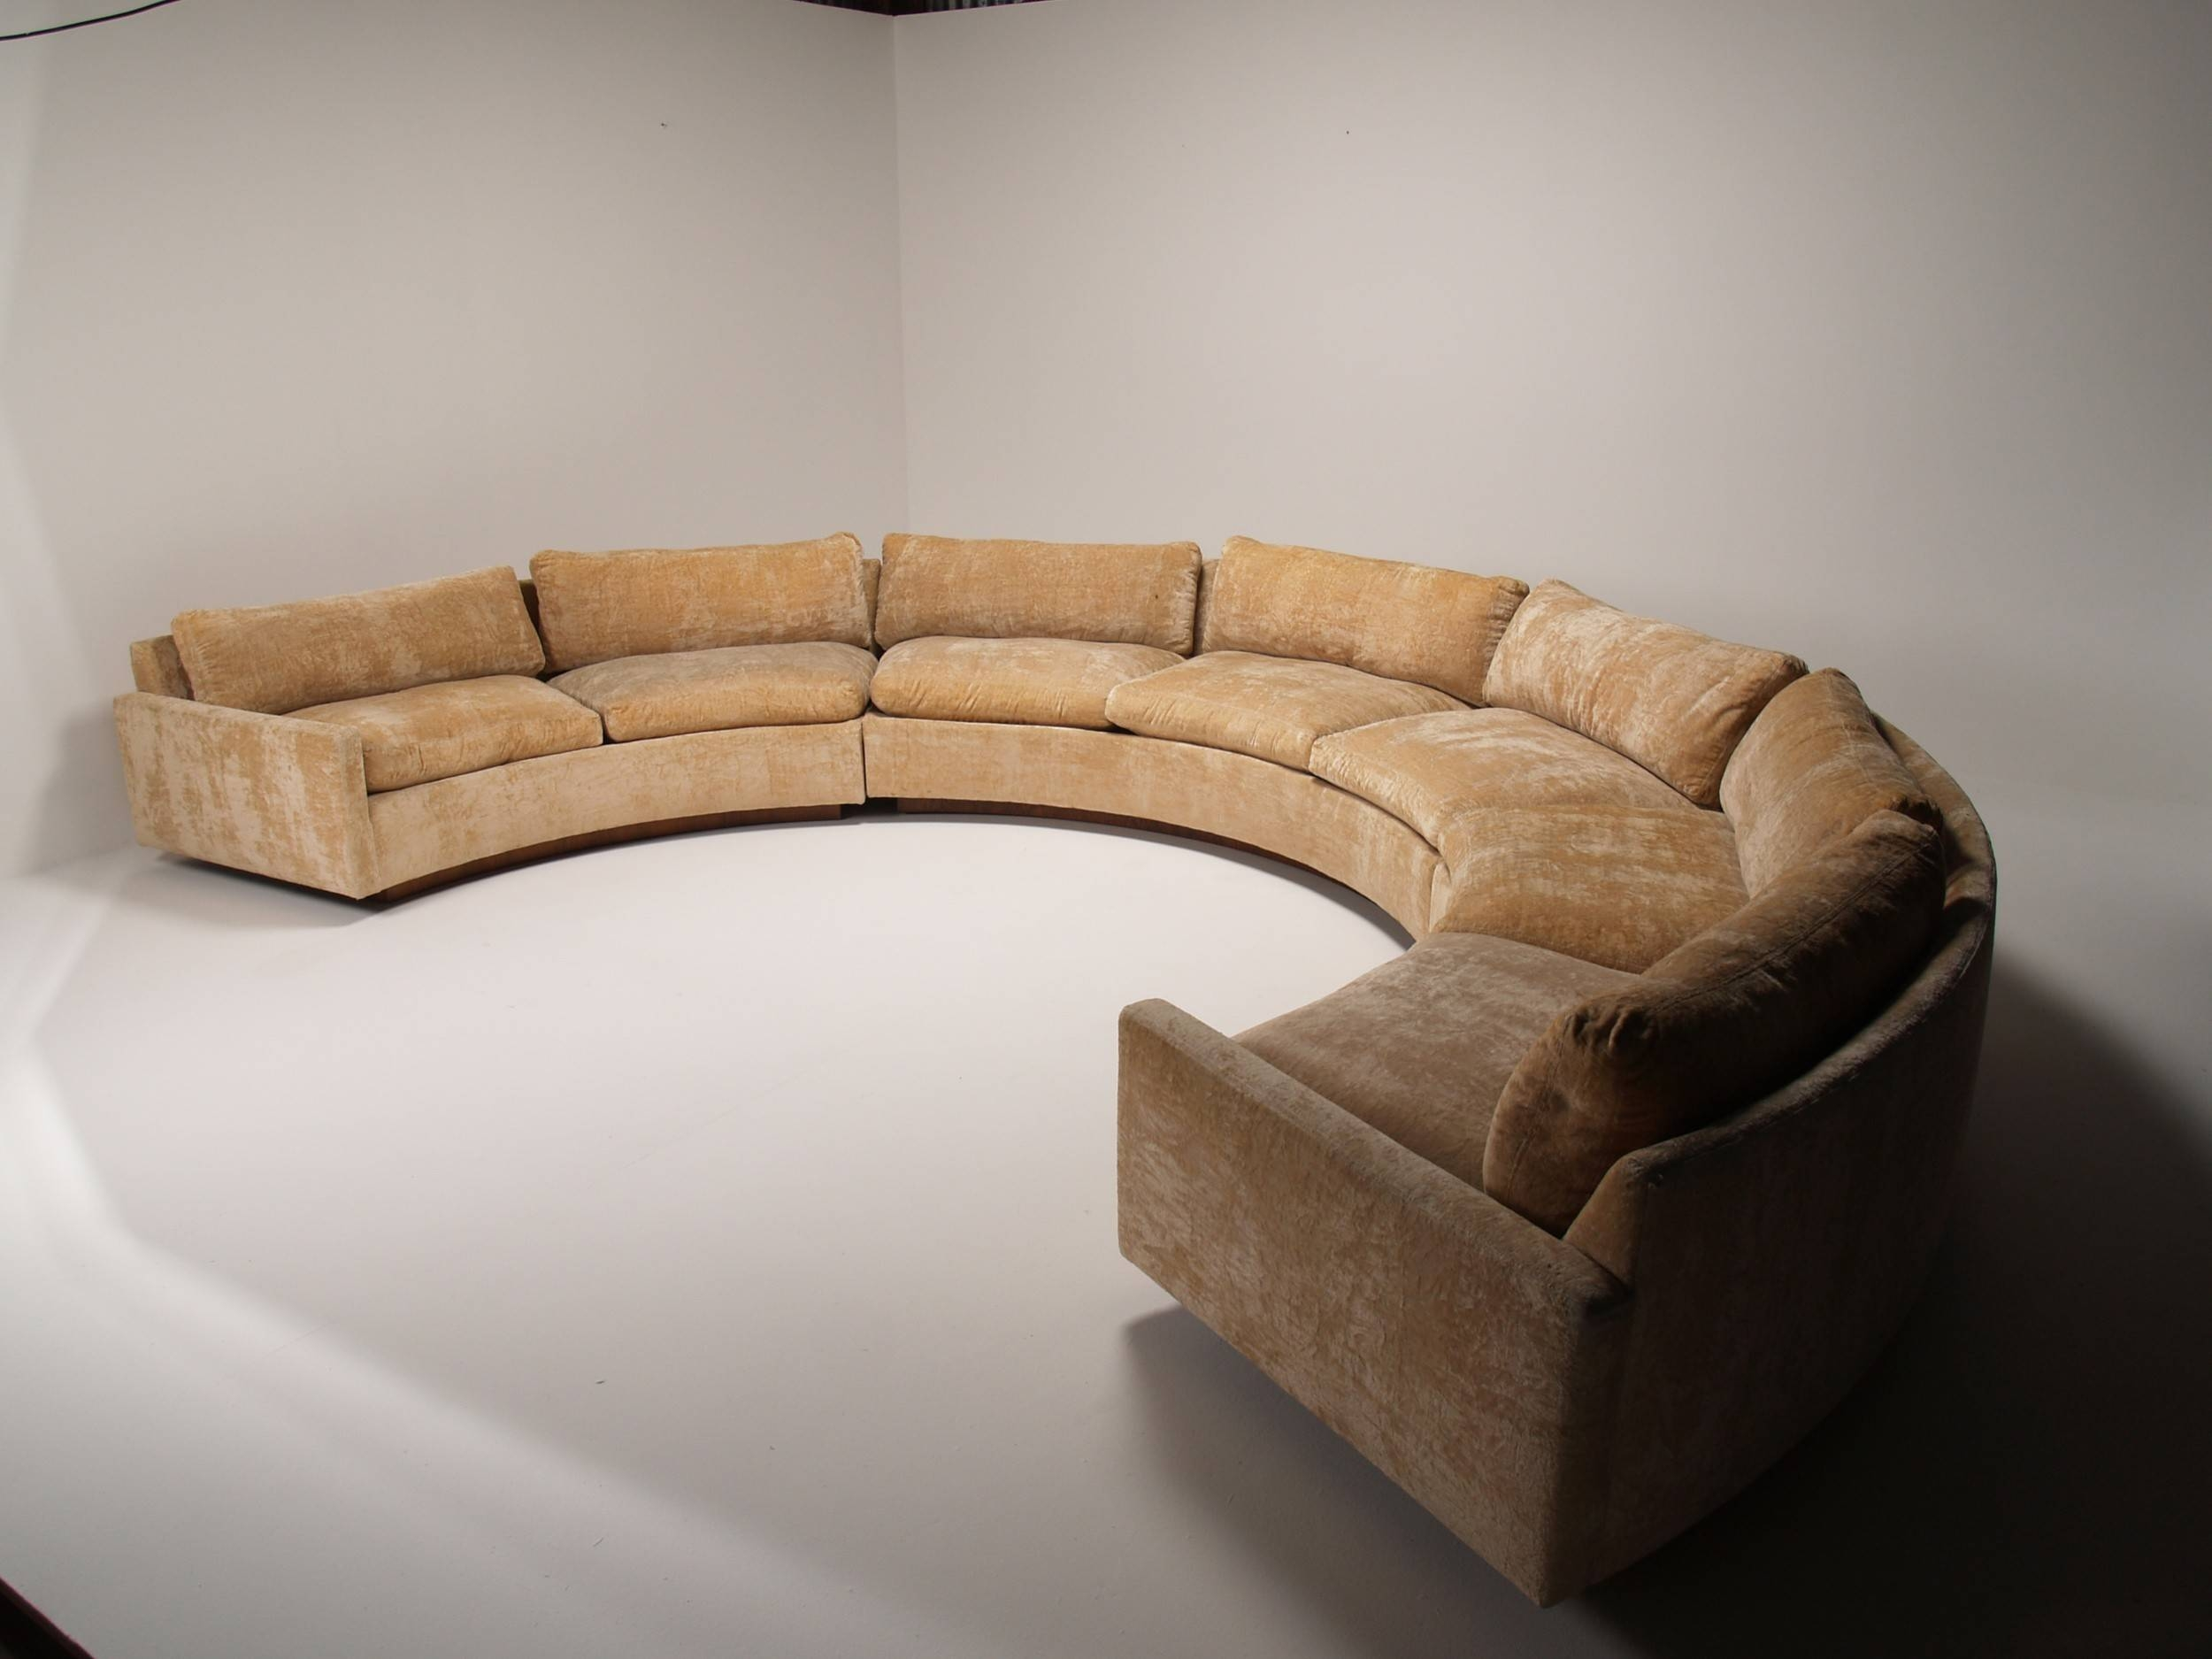 Astounding Semi Circular Sectional Sofa 94 About Remodel intended for Individual Piece Sectional Sofas (Image 3 of 25)